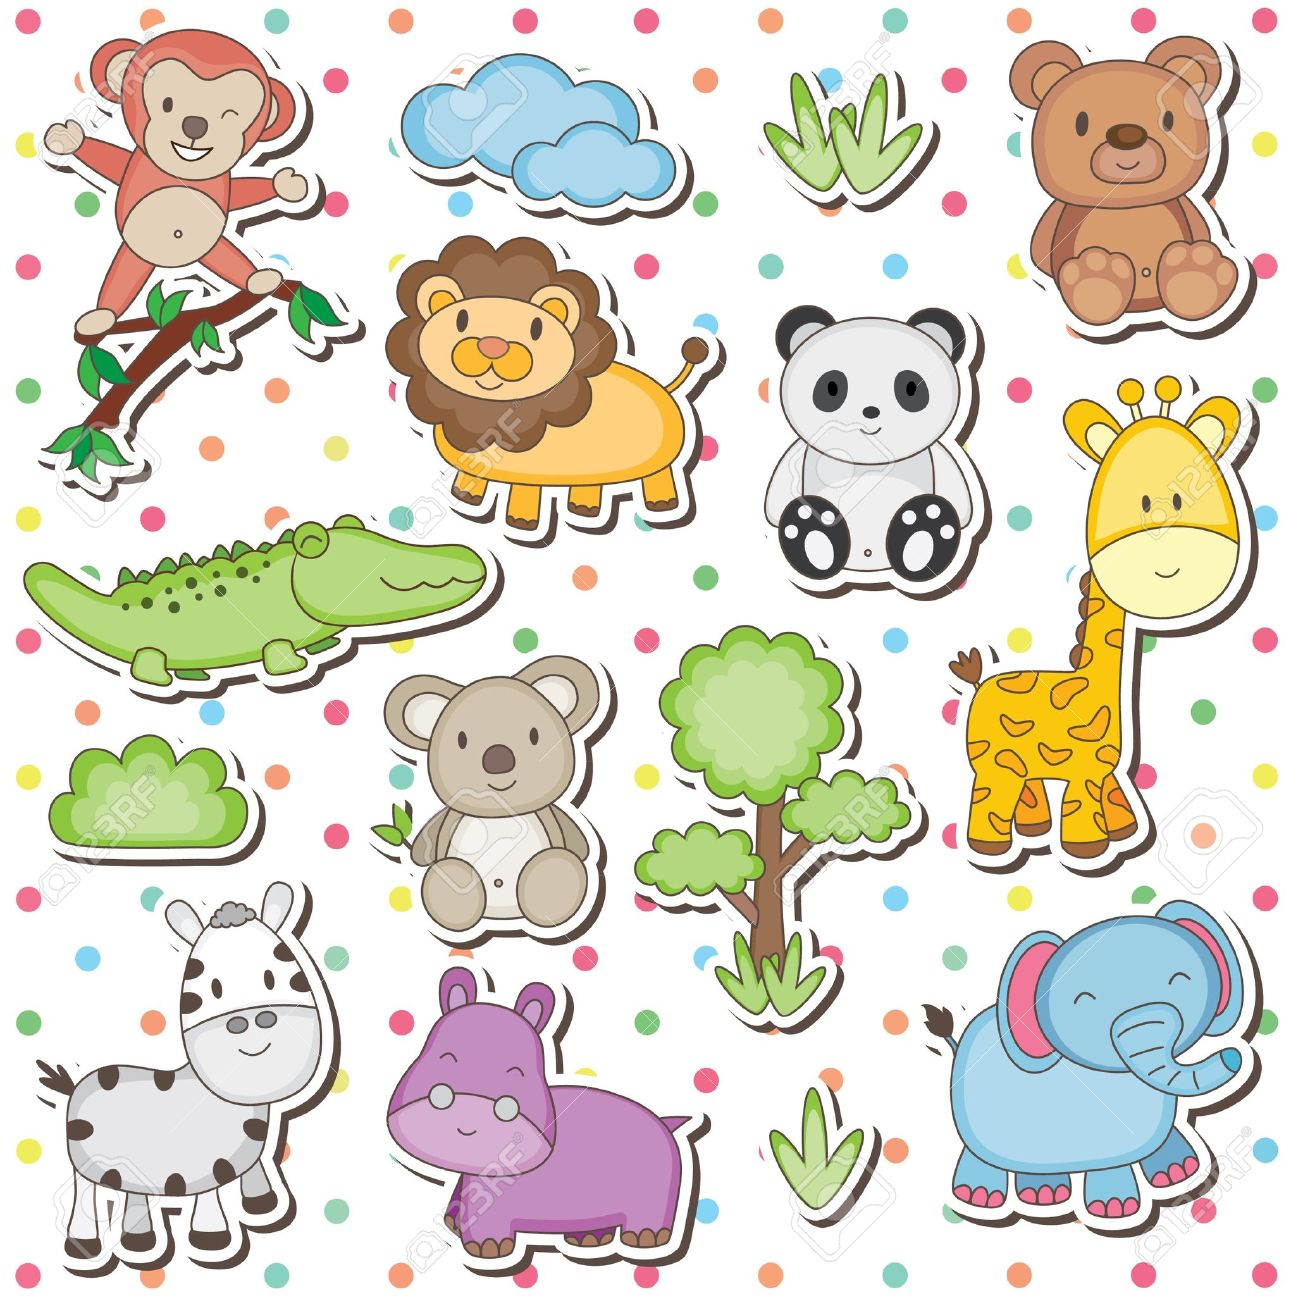 Safari clipart happy animal Selva de con dibujos